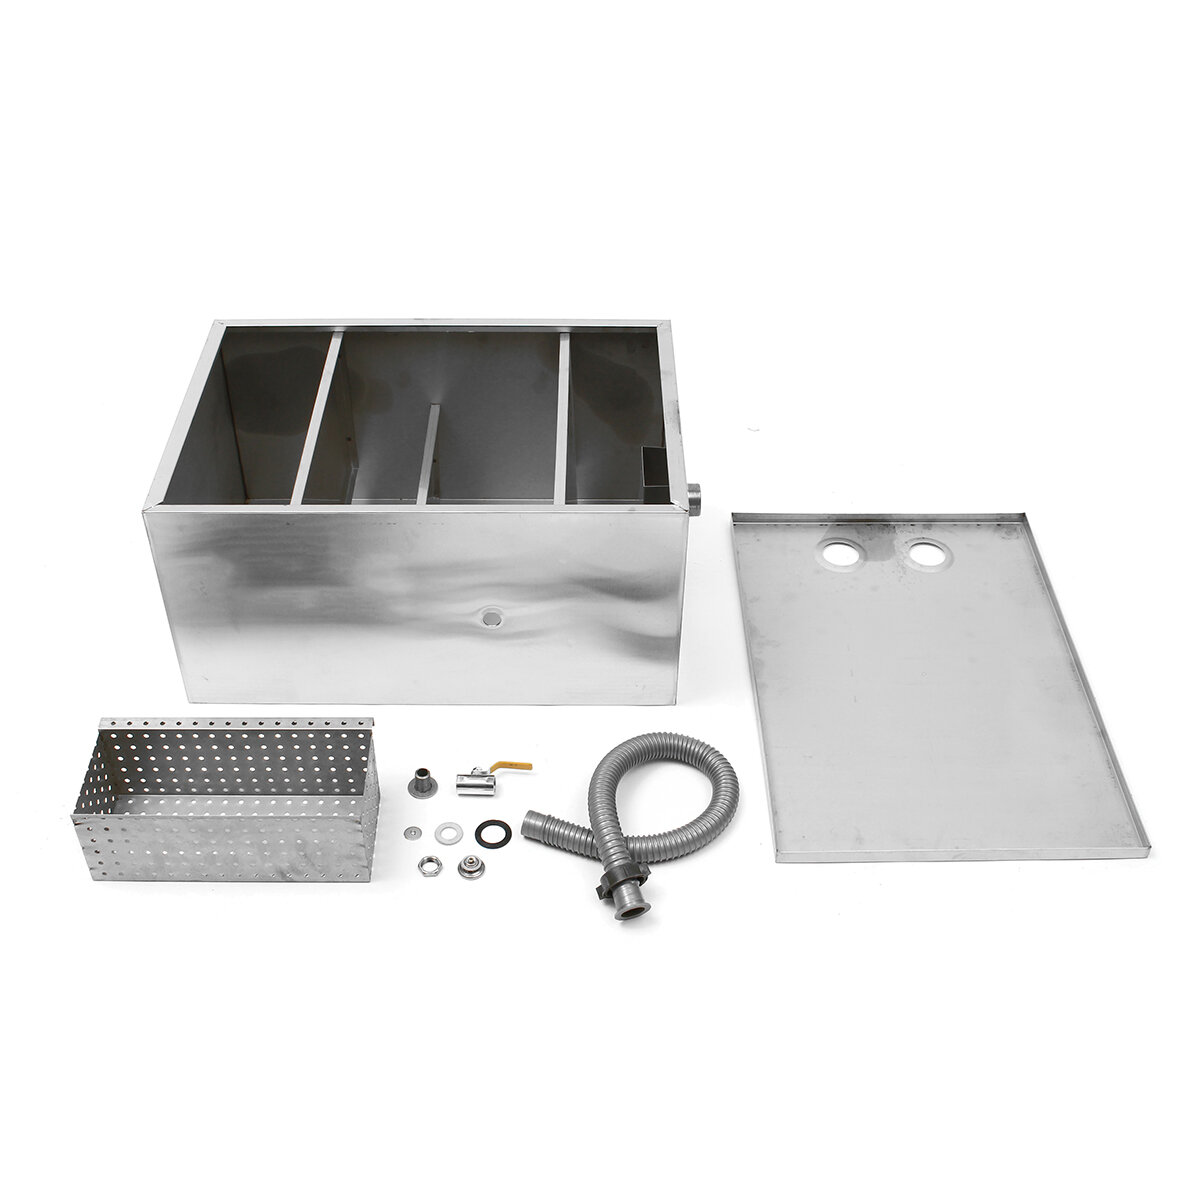 Grease Trap For Sale >> 5l Stainless Steel Grease Trap Interceptor Commercial Interceptor Grease Trap